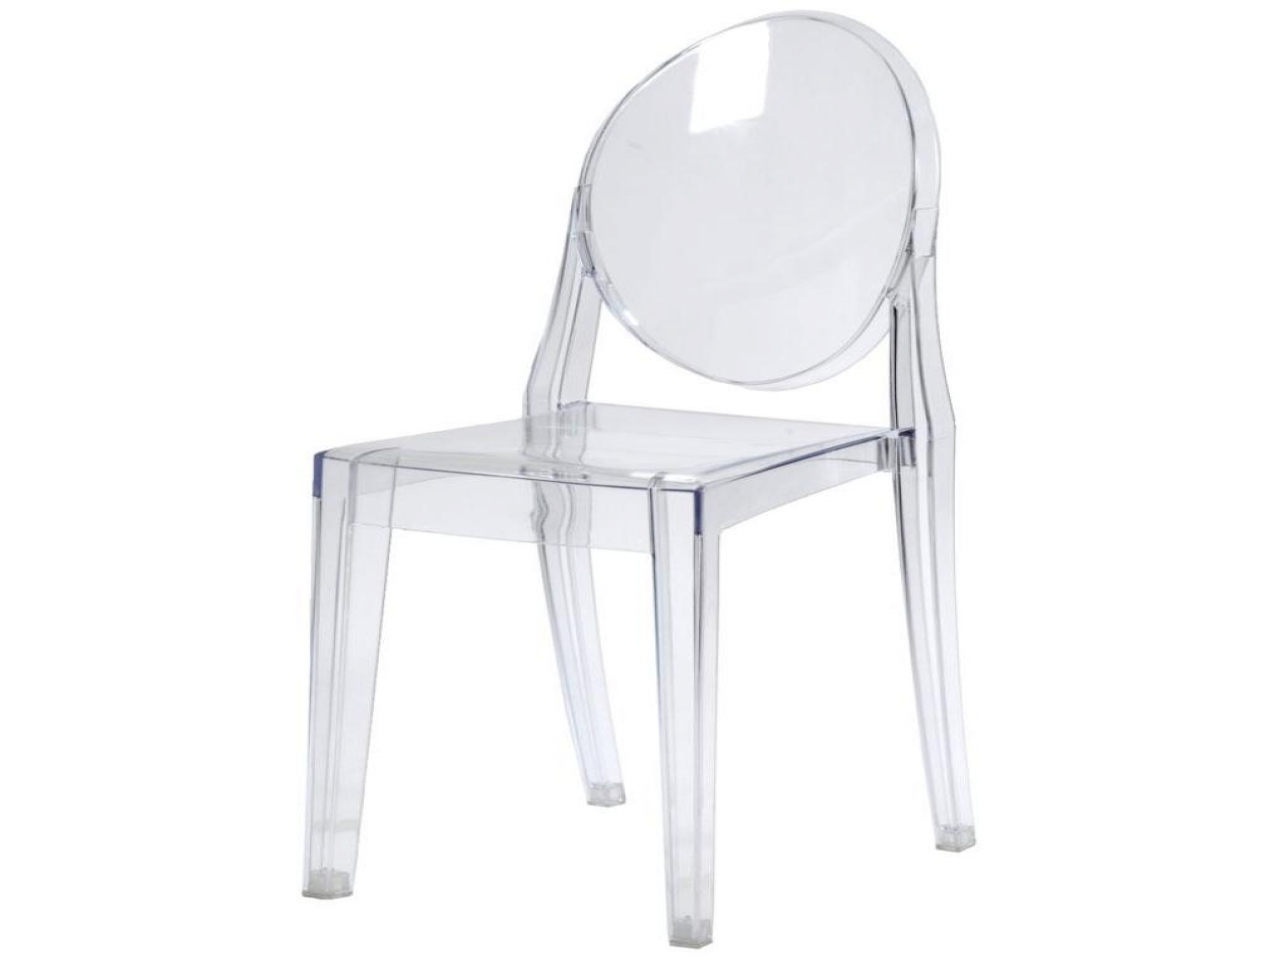 2017 Decoration Ghost Starck Chair Clear Plastic Dining Table And Chairs For Clear Plastic Dining Tables (View 1 of 25)